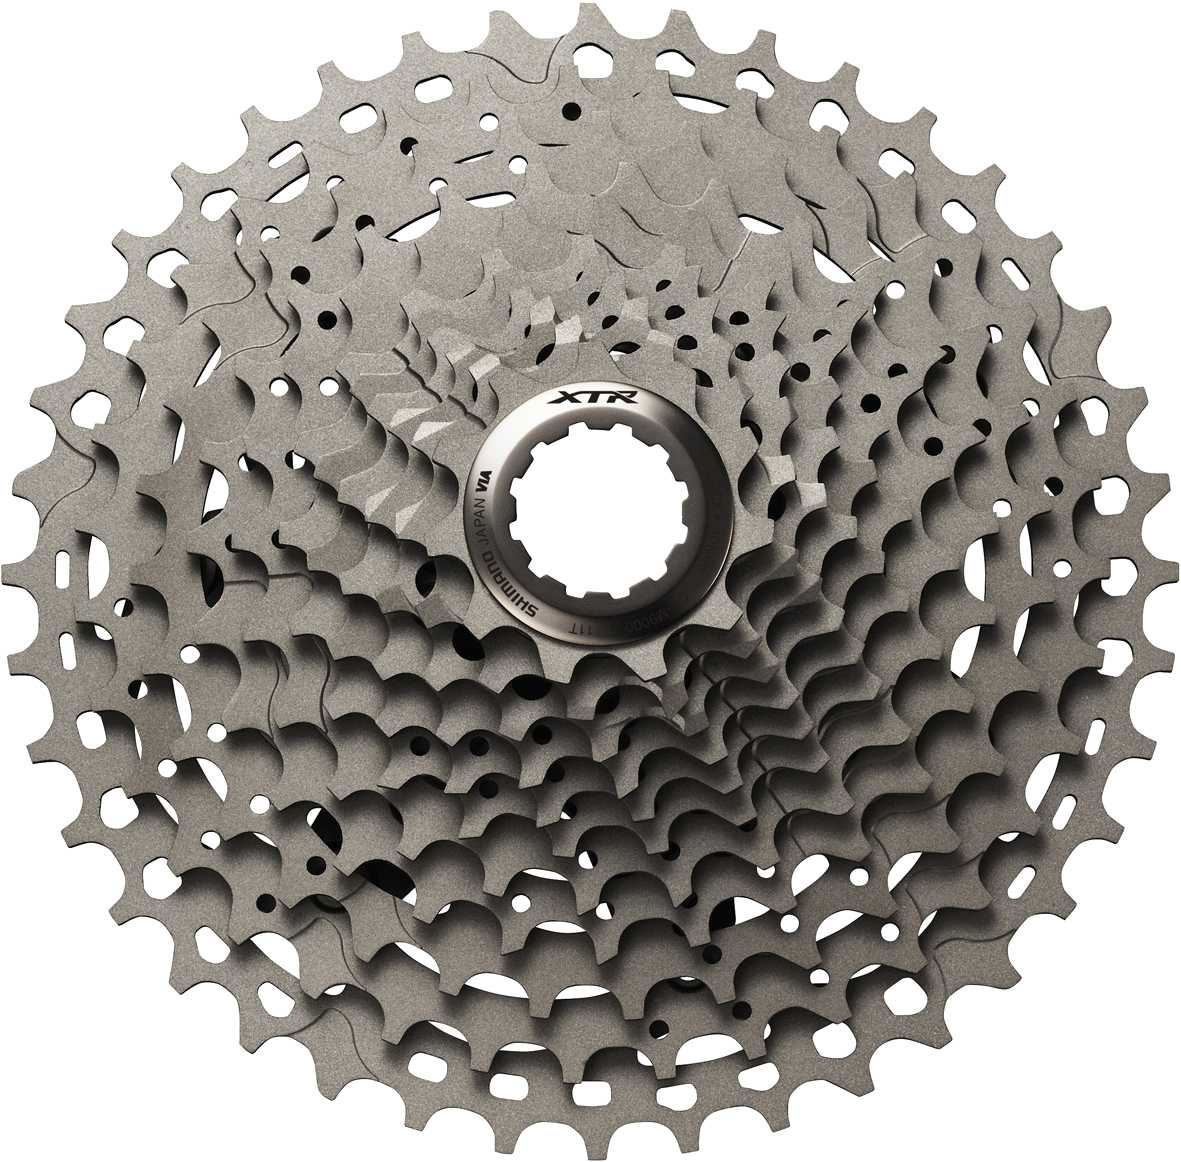 Shimano XTR M9000 11 Speed 11-40 Tooth Cassette